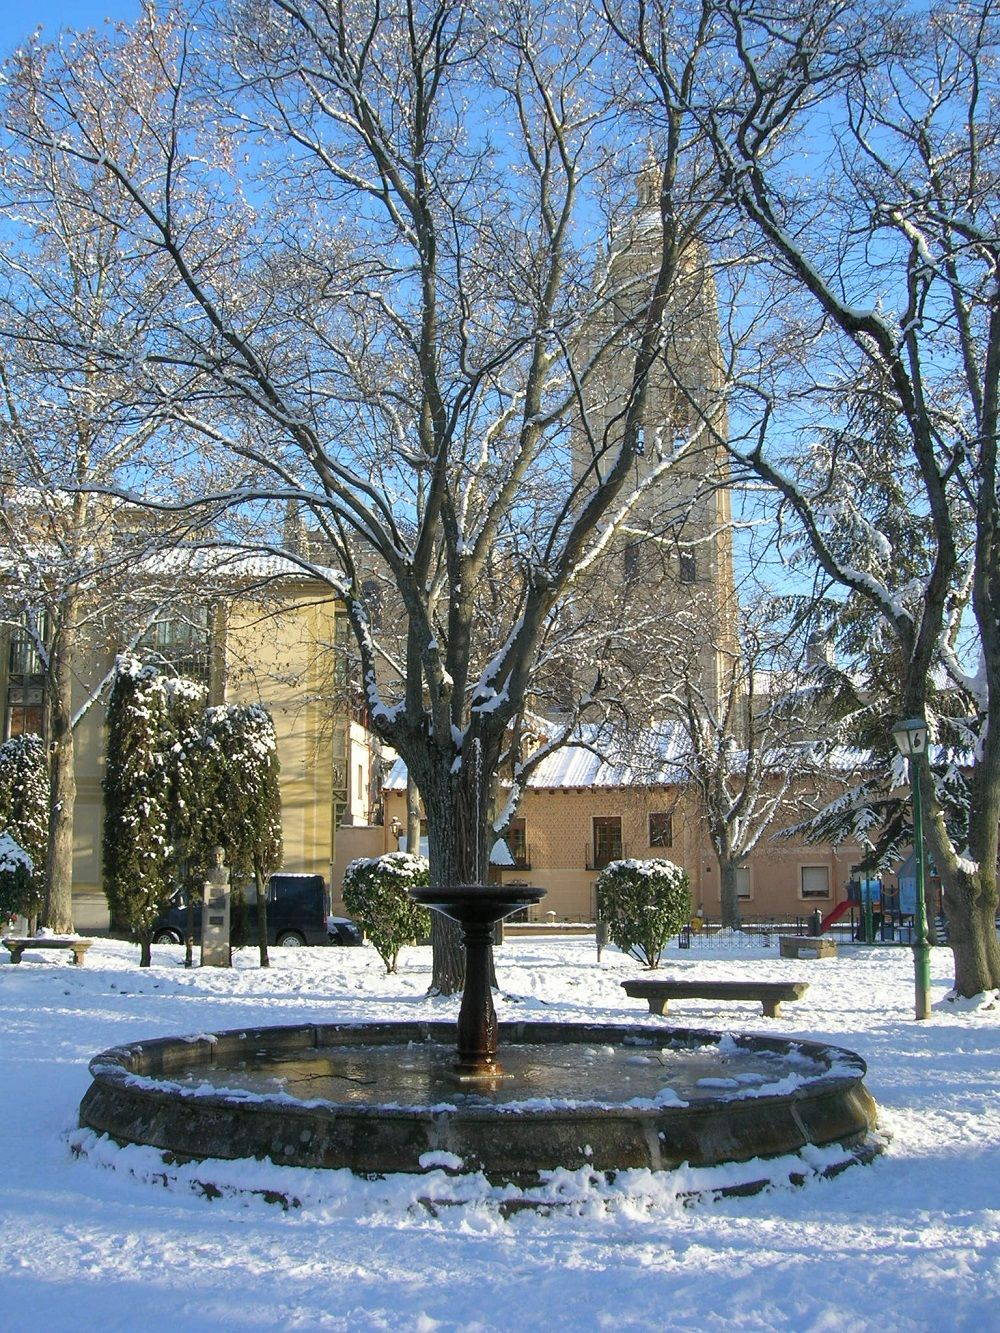 Segovia winter scene